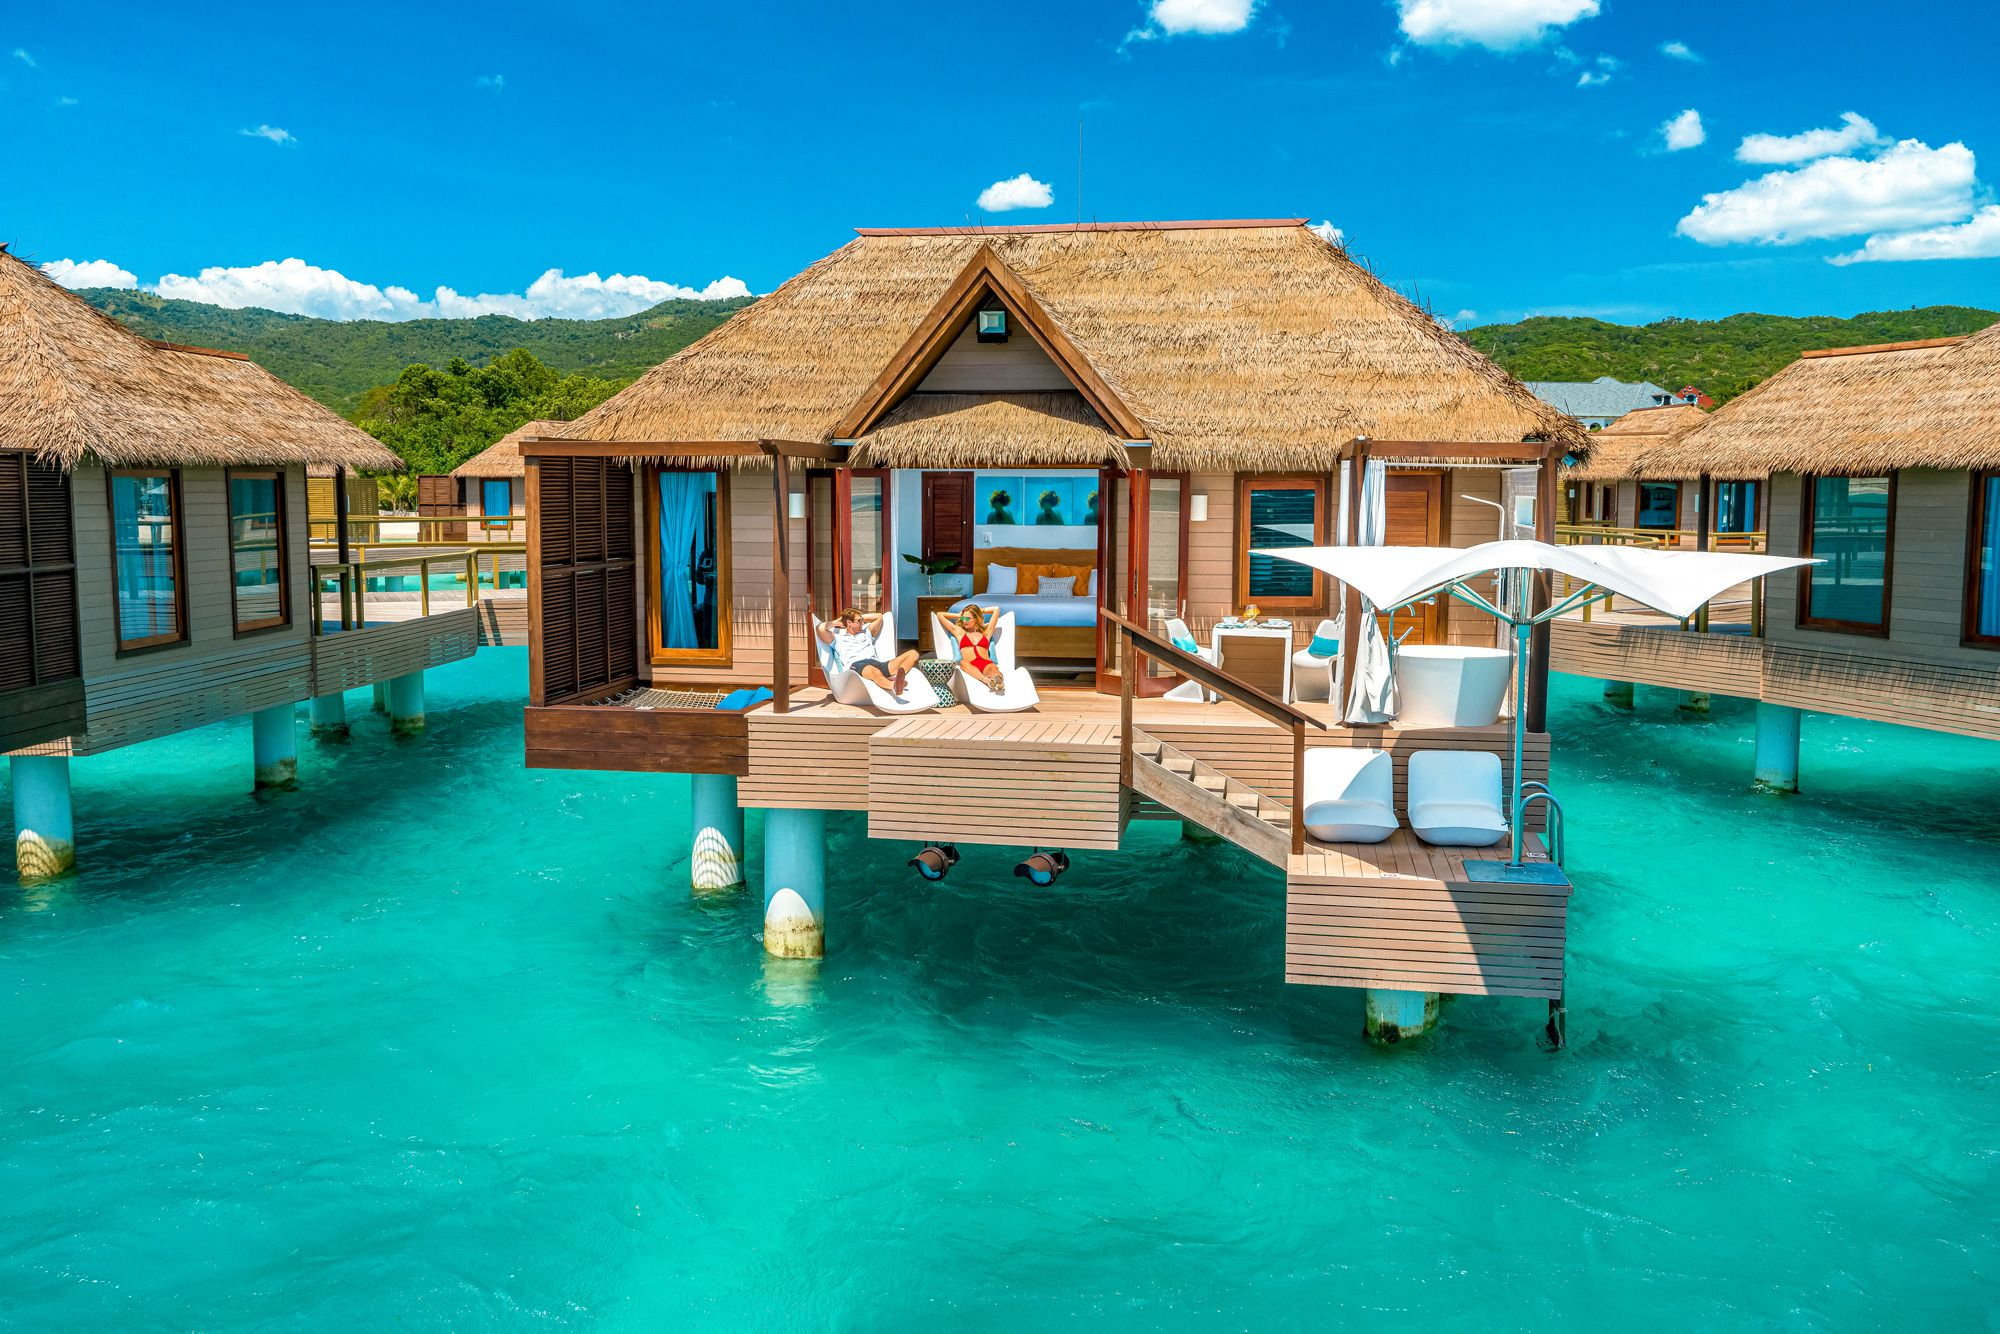 Sandals South Coast Over Water Honeymoon Bungalow Out